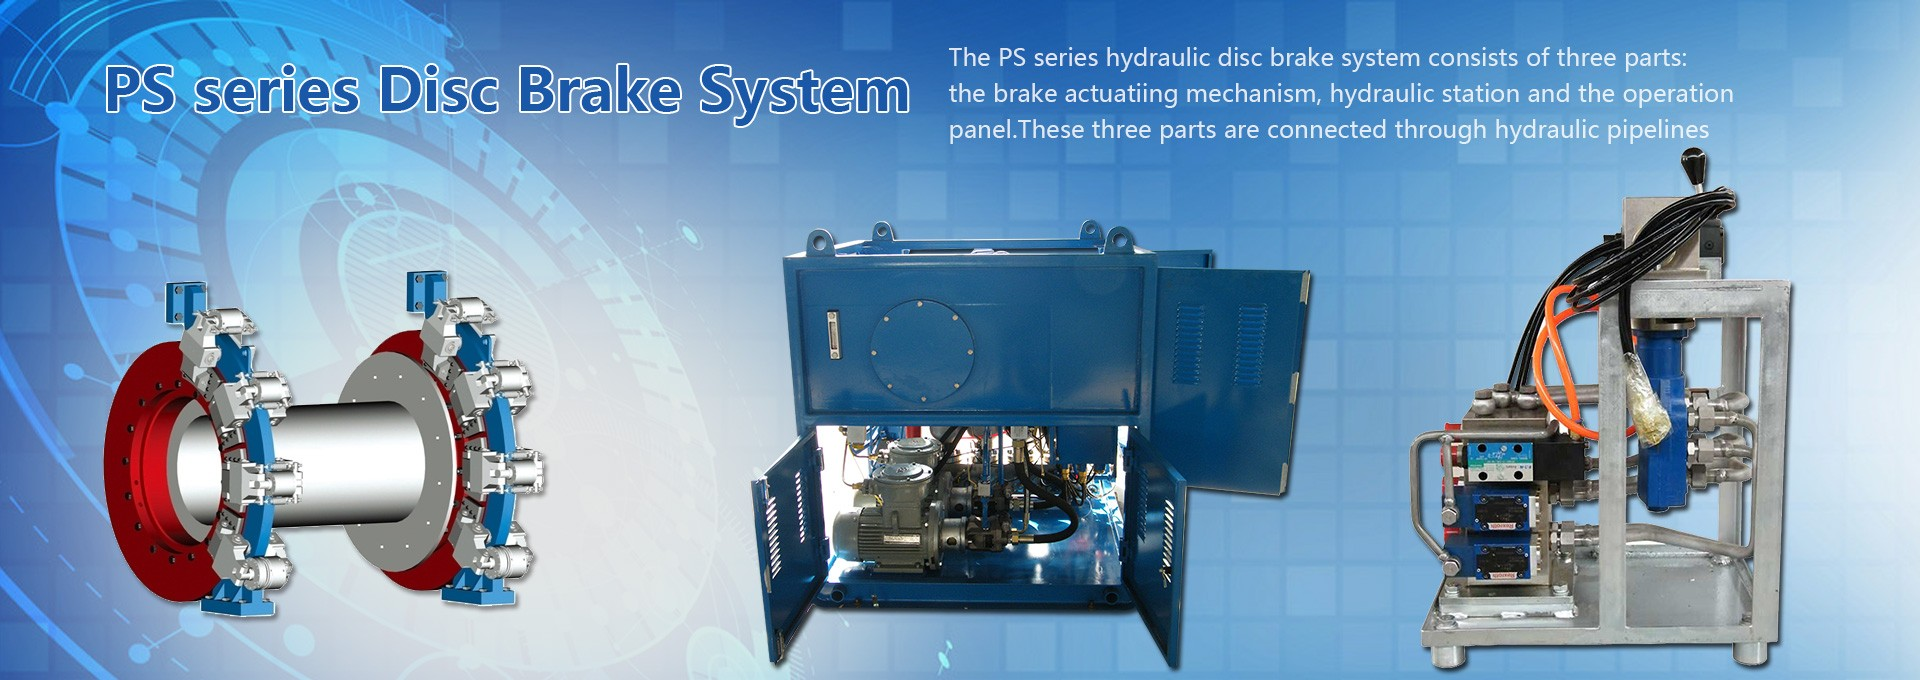 PS Series Hydraulic Disc Brake System